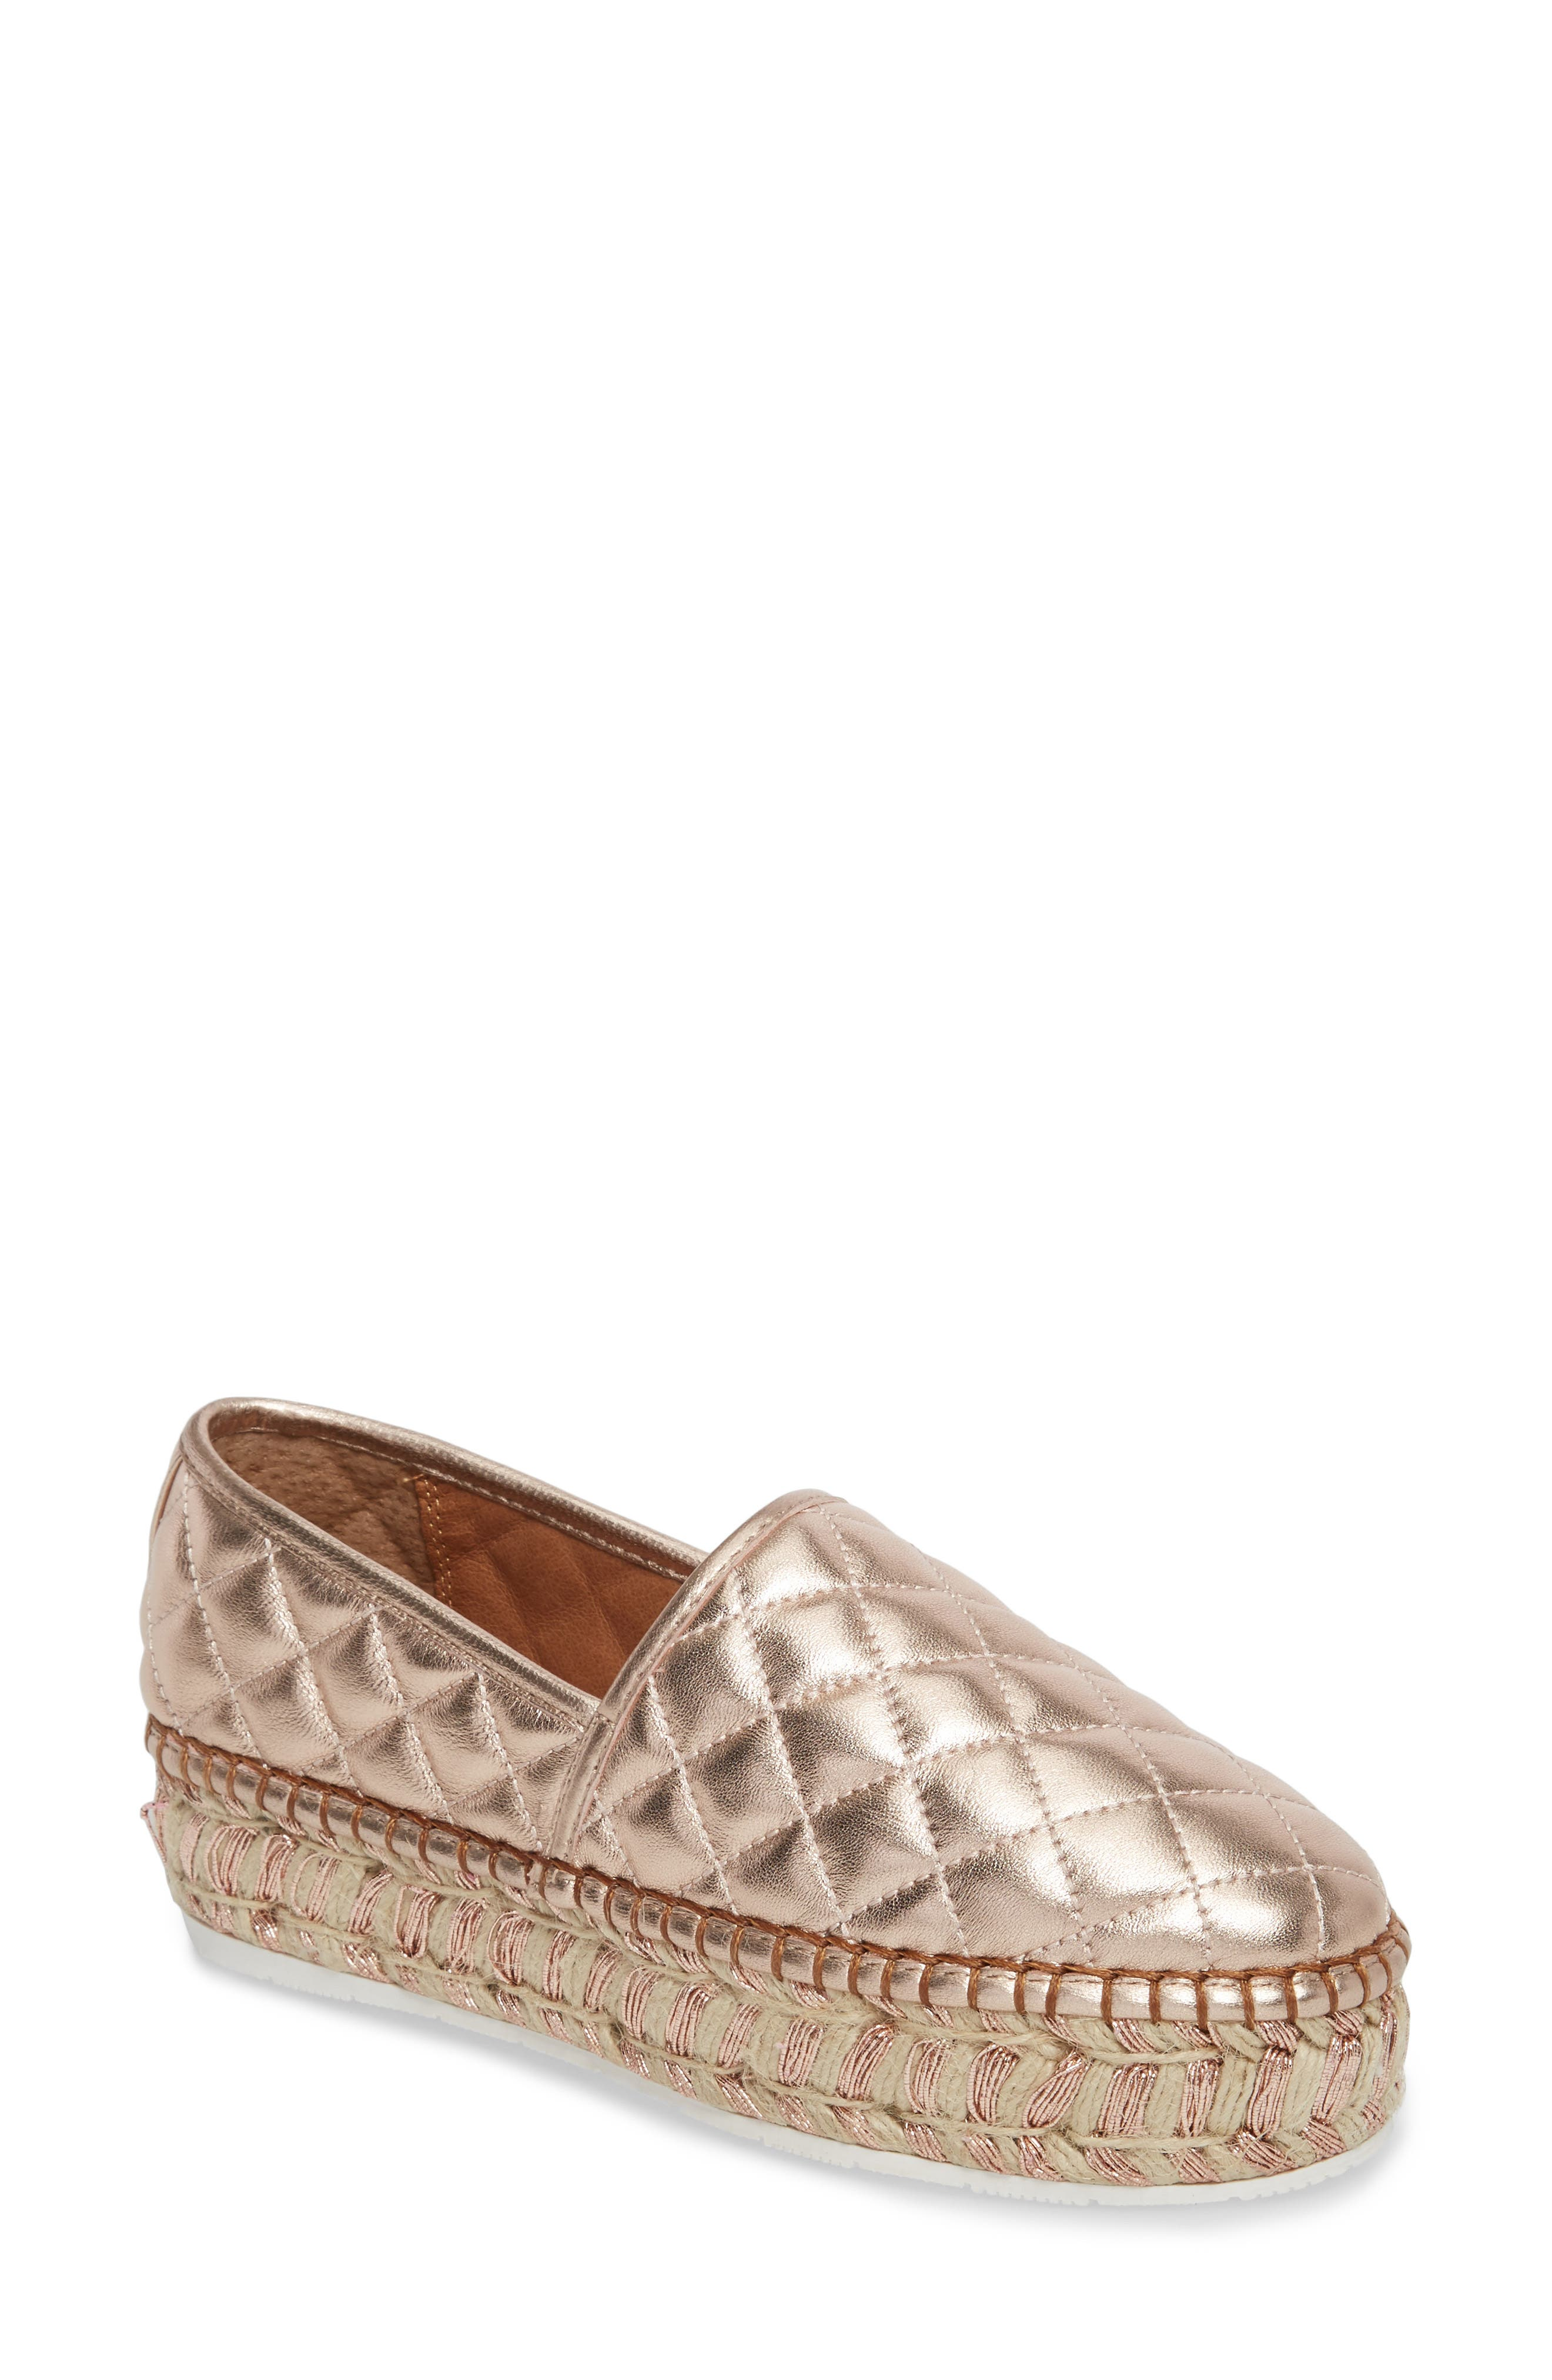 Main Image - JSlides Renata Quilted Slip-On Platform Flat (Women)